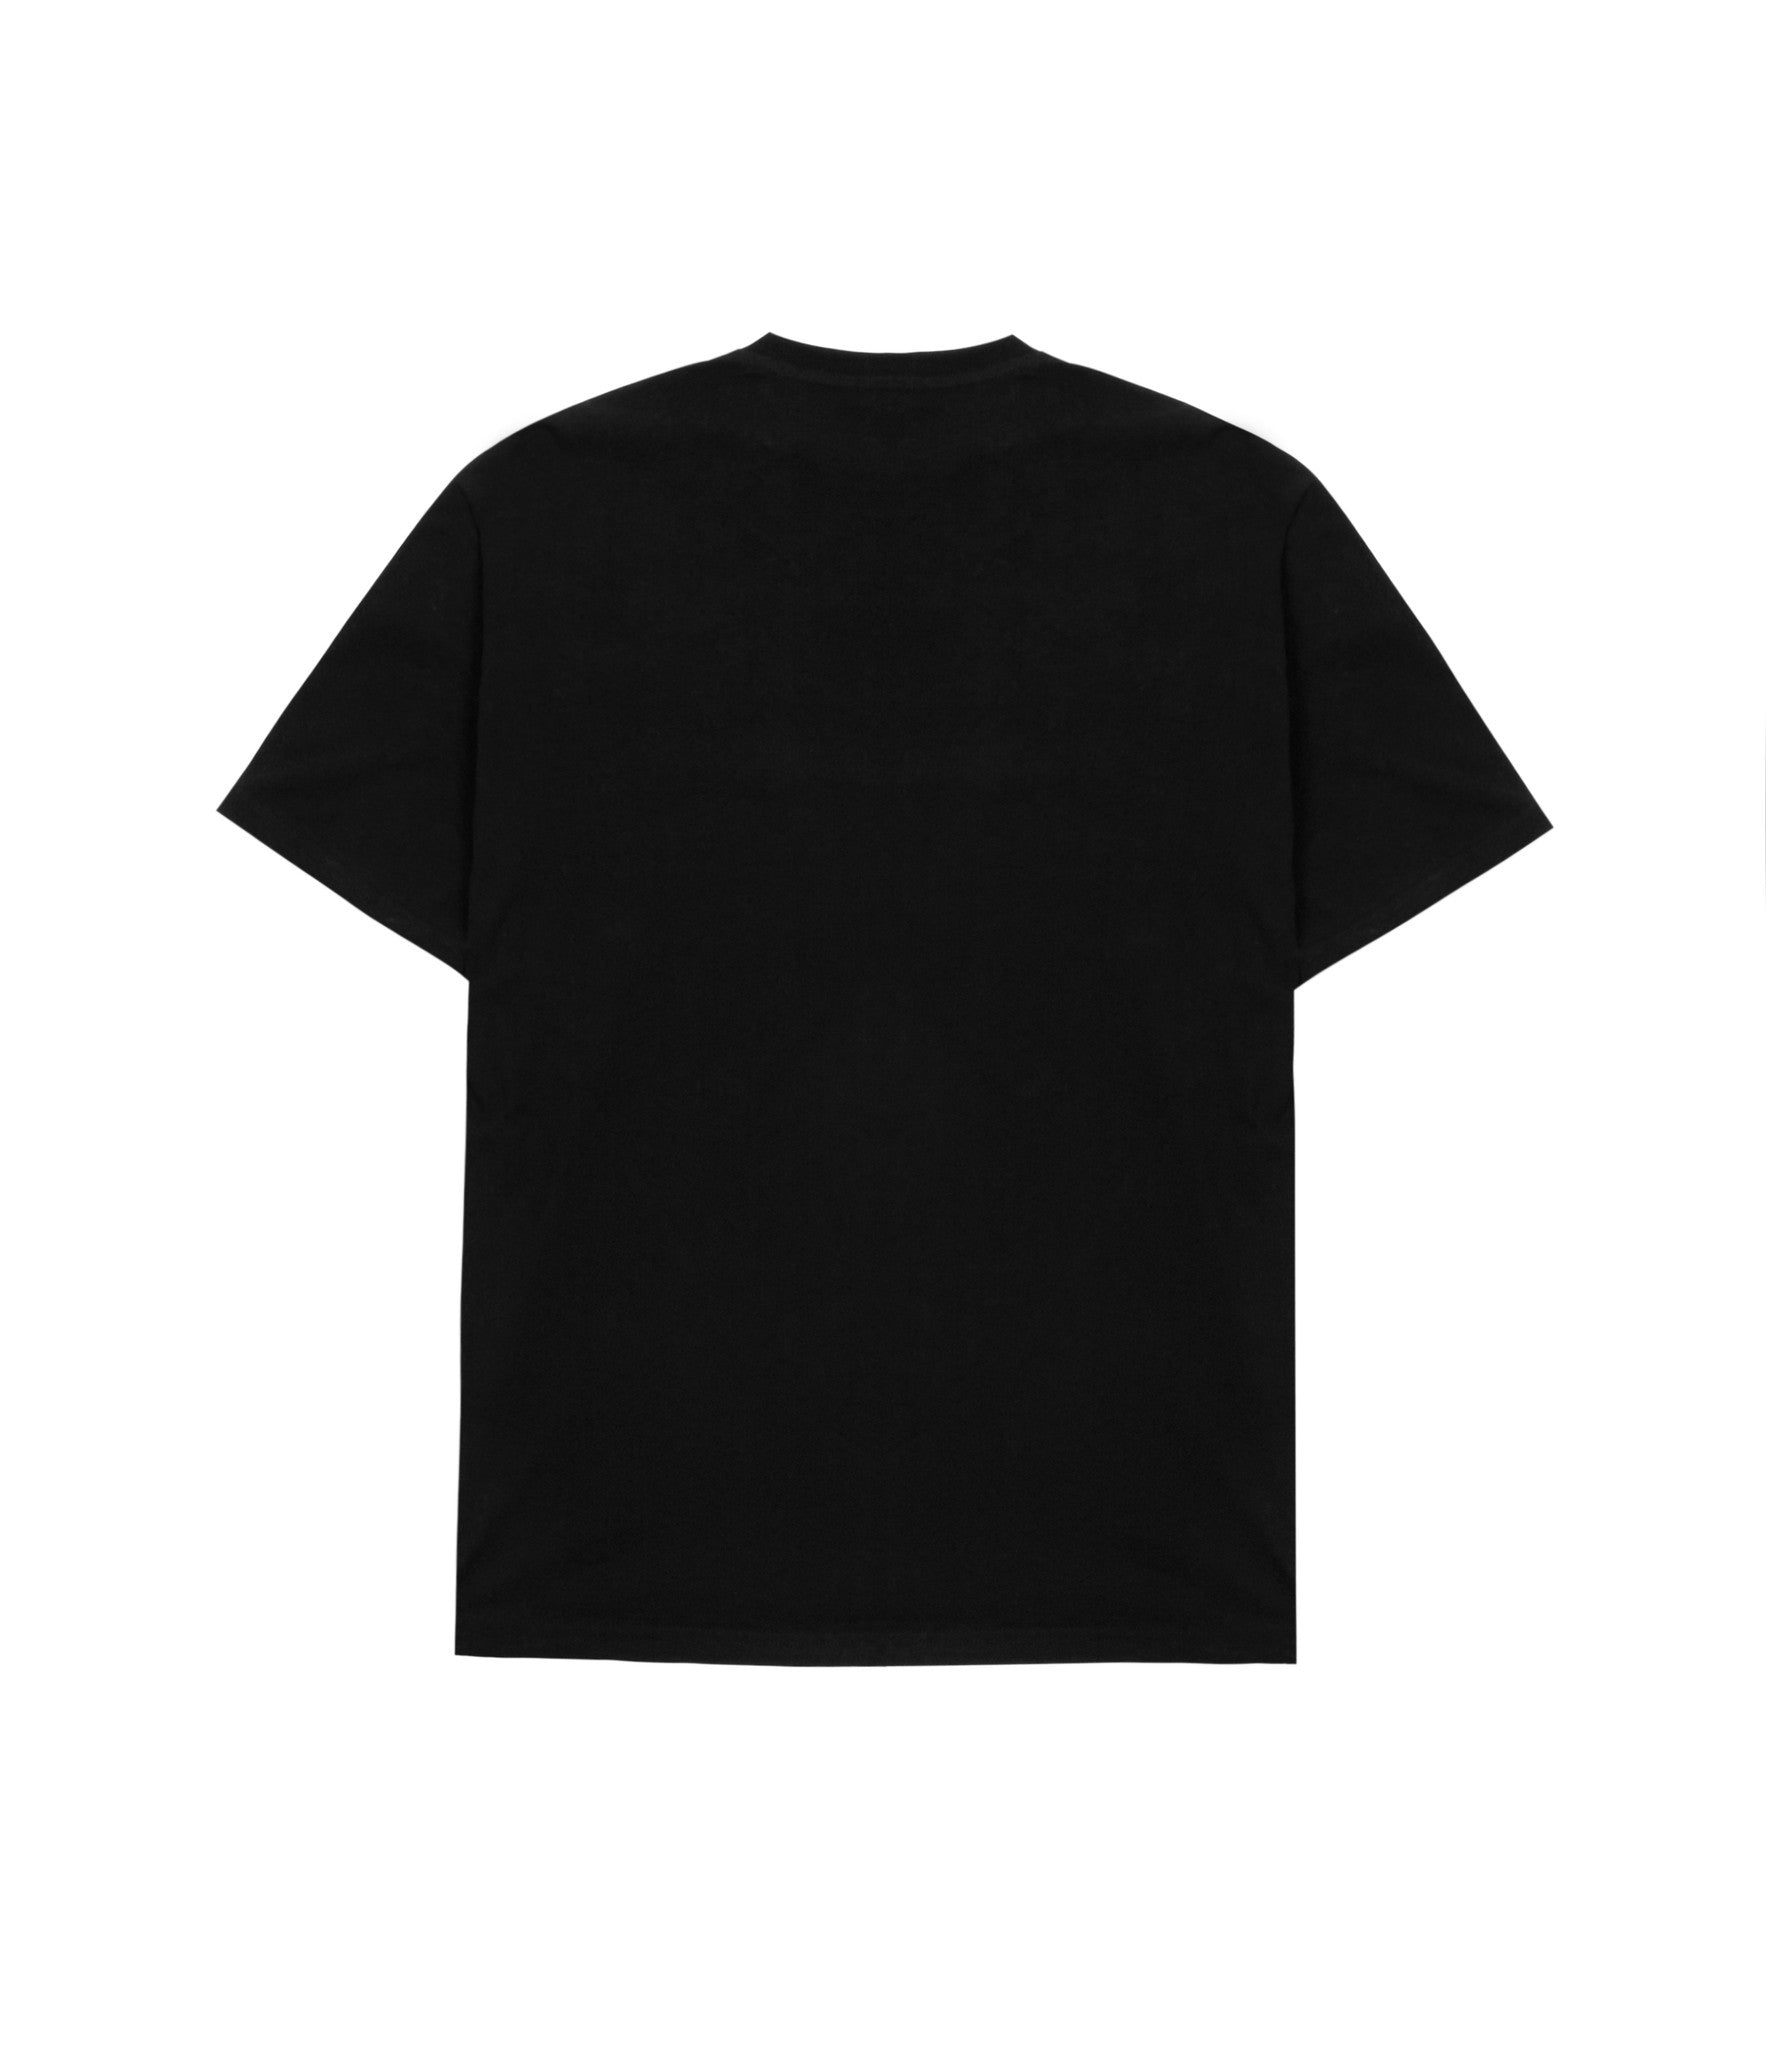 TS319 Box Logo Printed Tee - Black - underated london - underatedco - 3